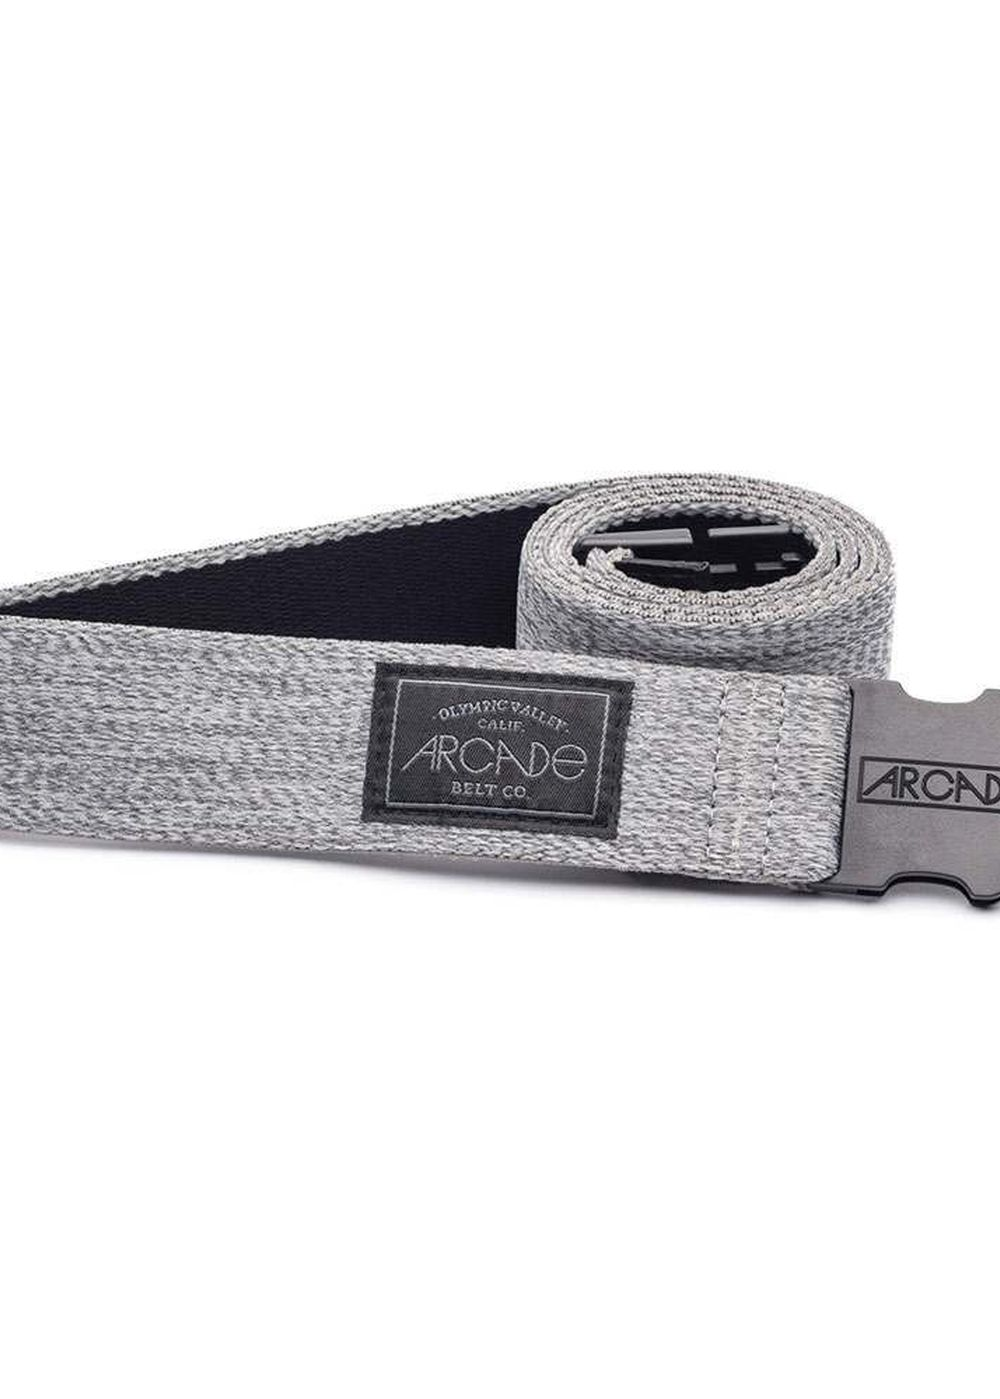 arcade belts the foundation heather grey